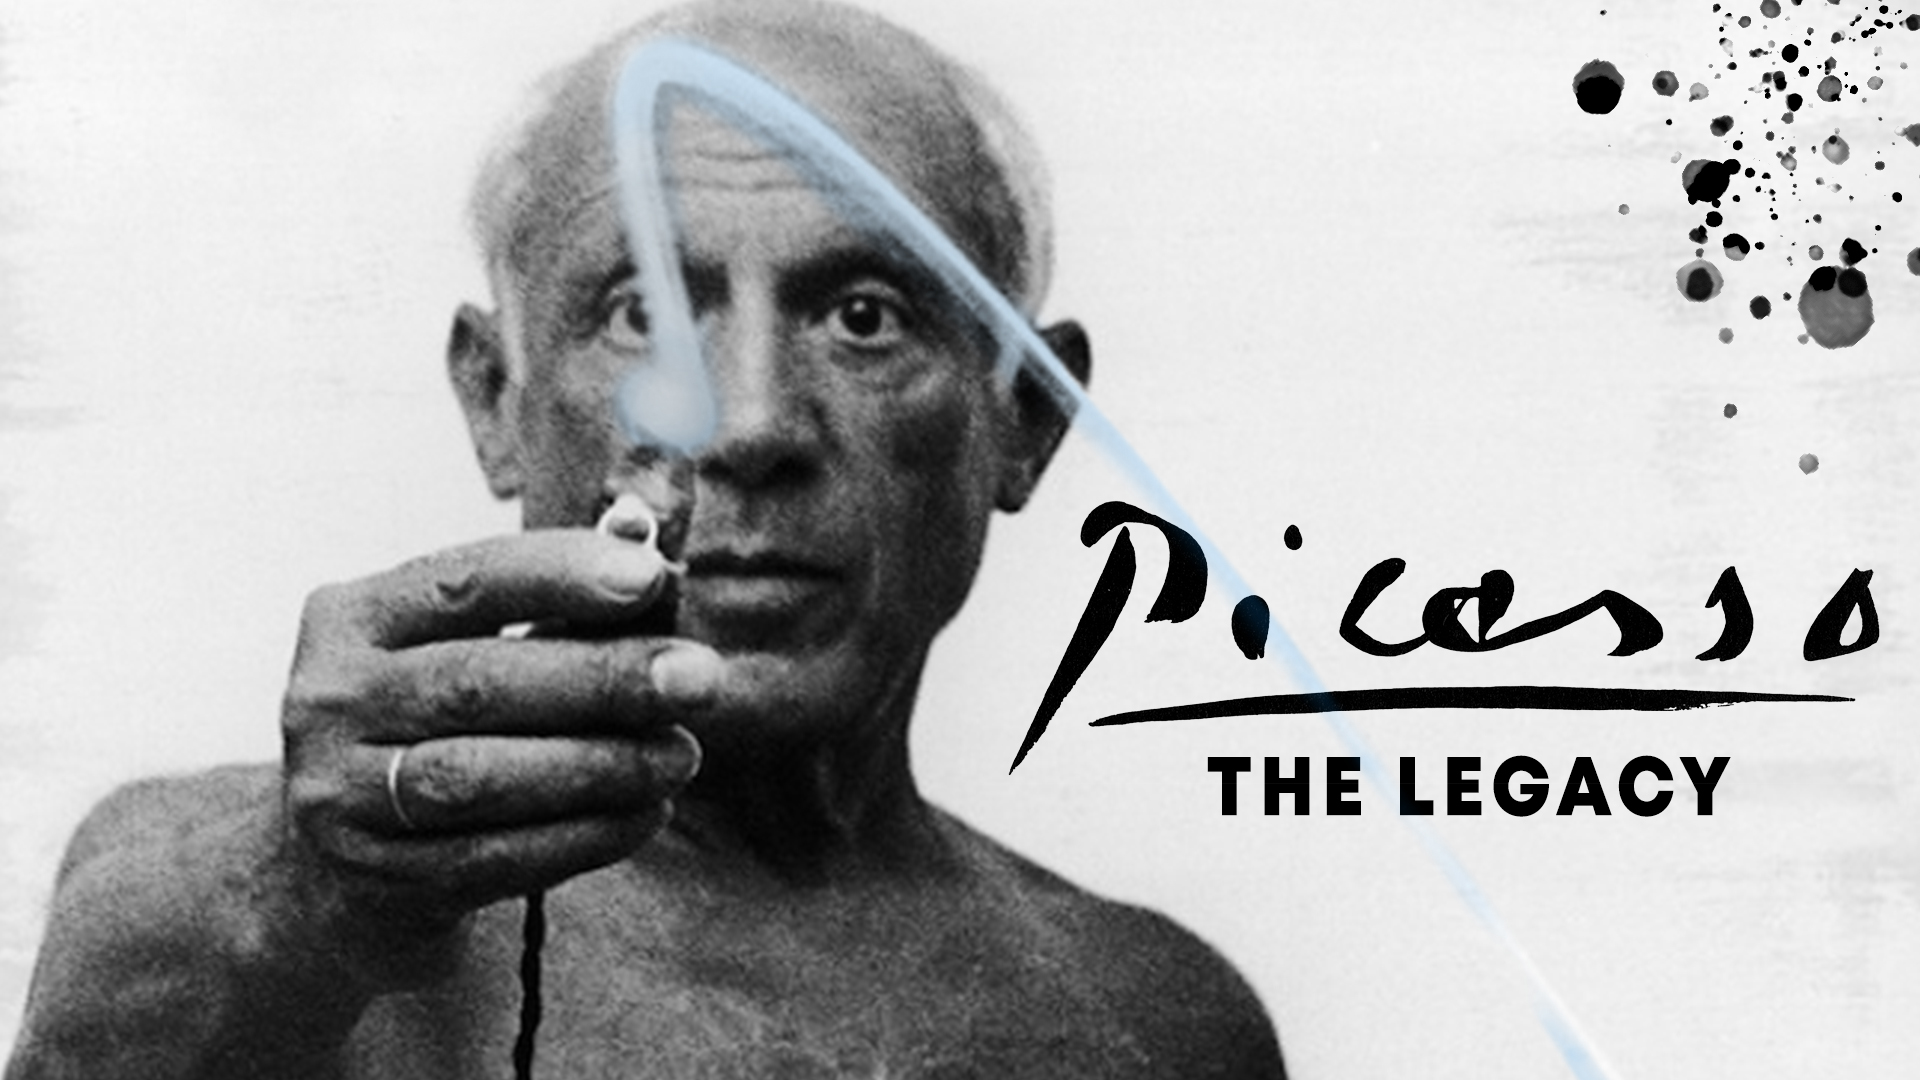 Picasso - The Legacy